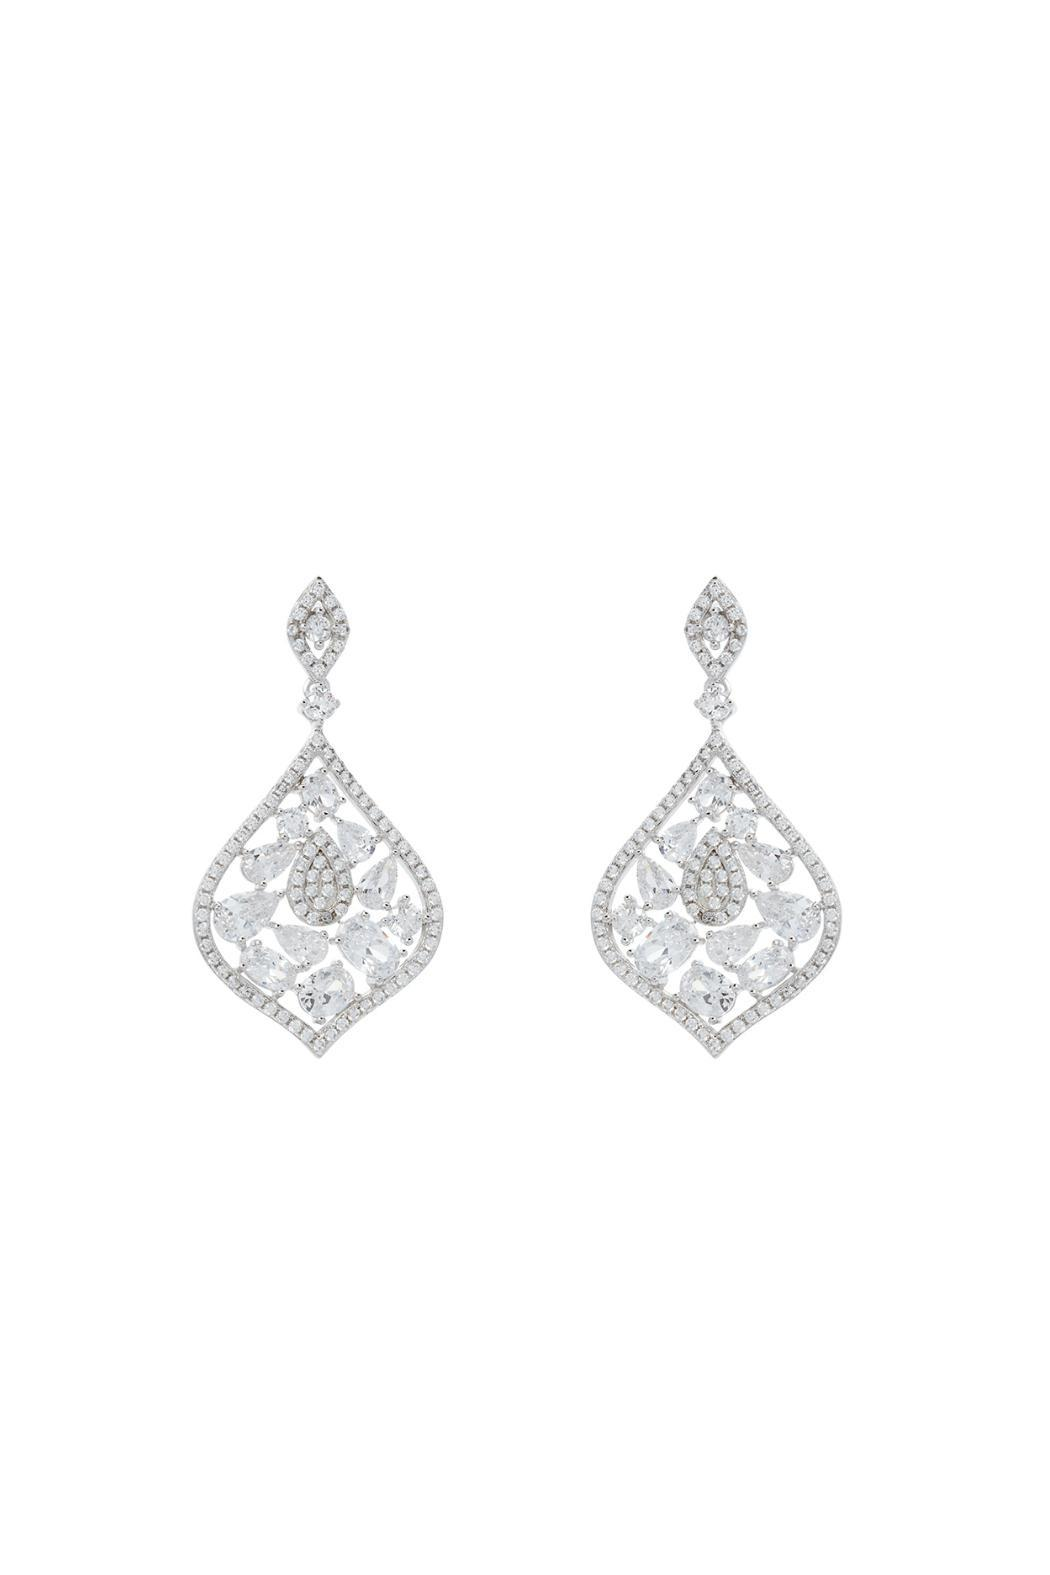 athra silver statement earrings from dallas by gemma